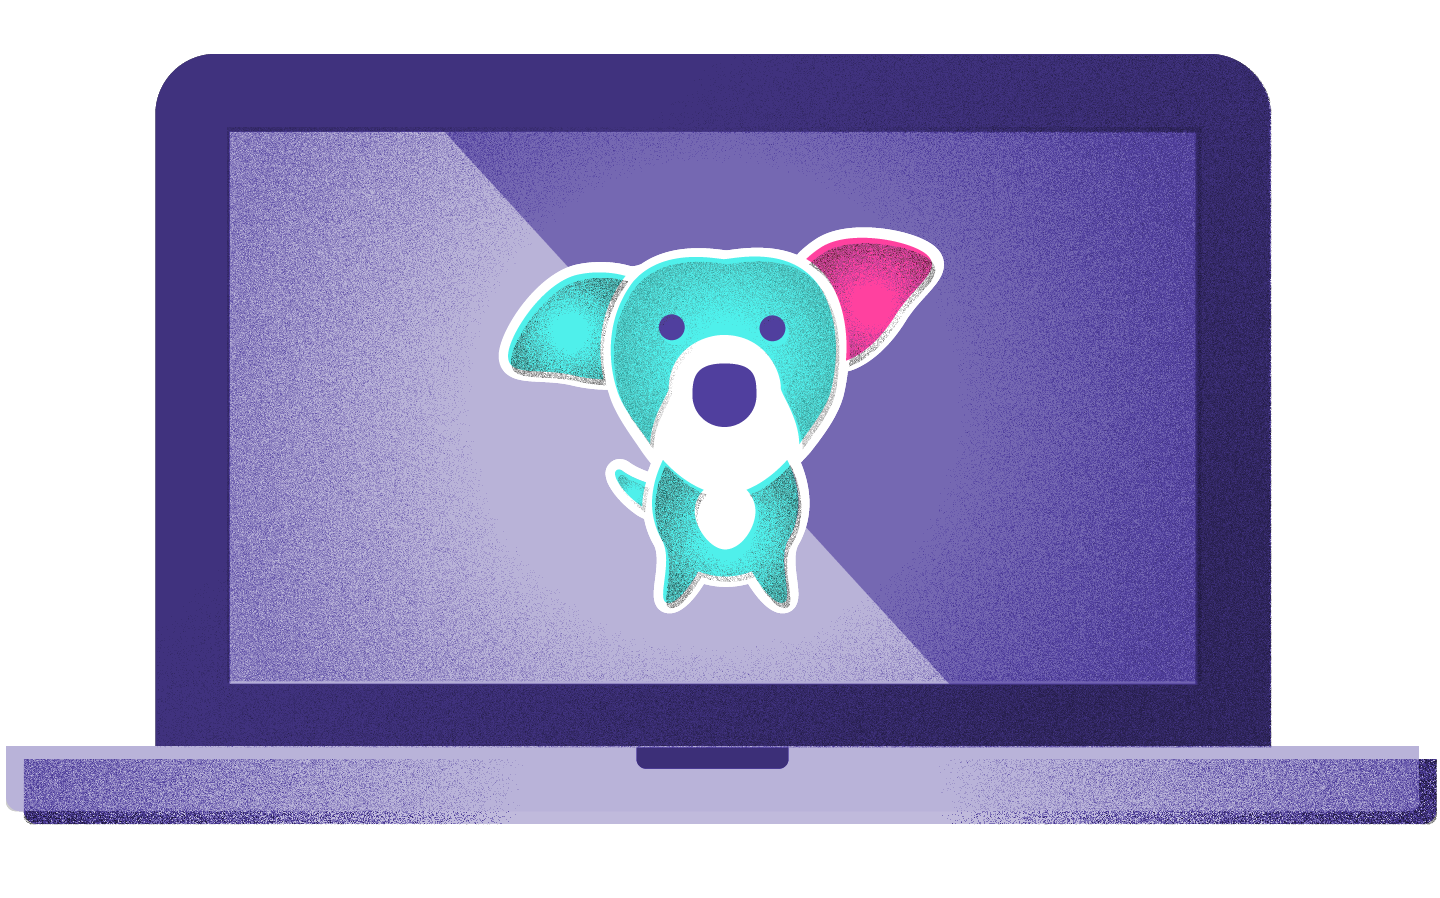 Buddy the BlogMutt dog in fancy new colors